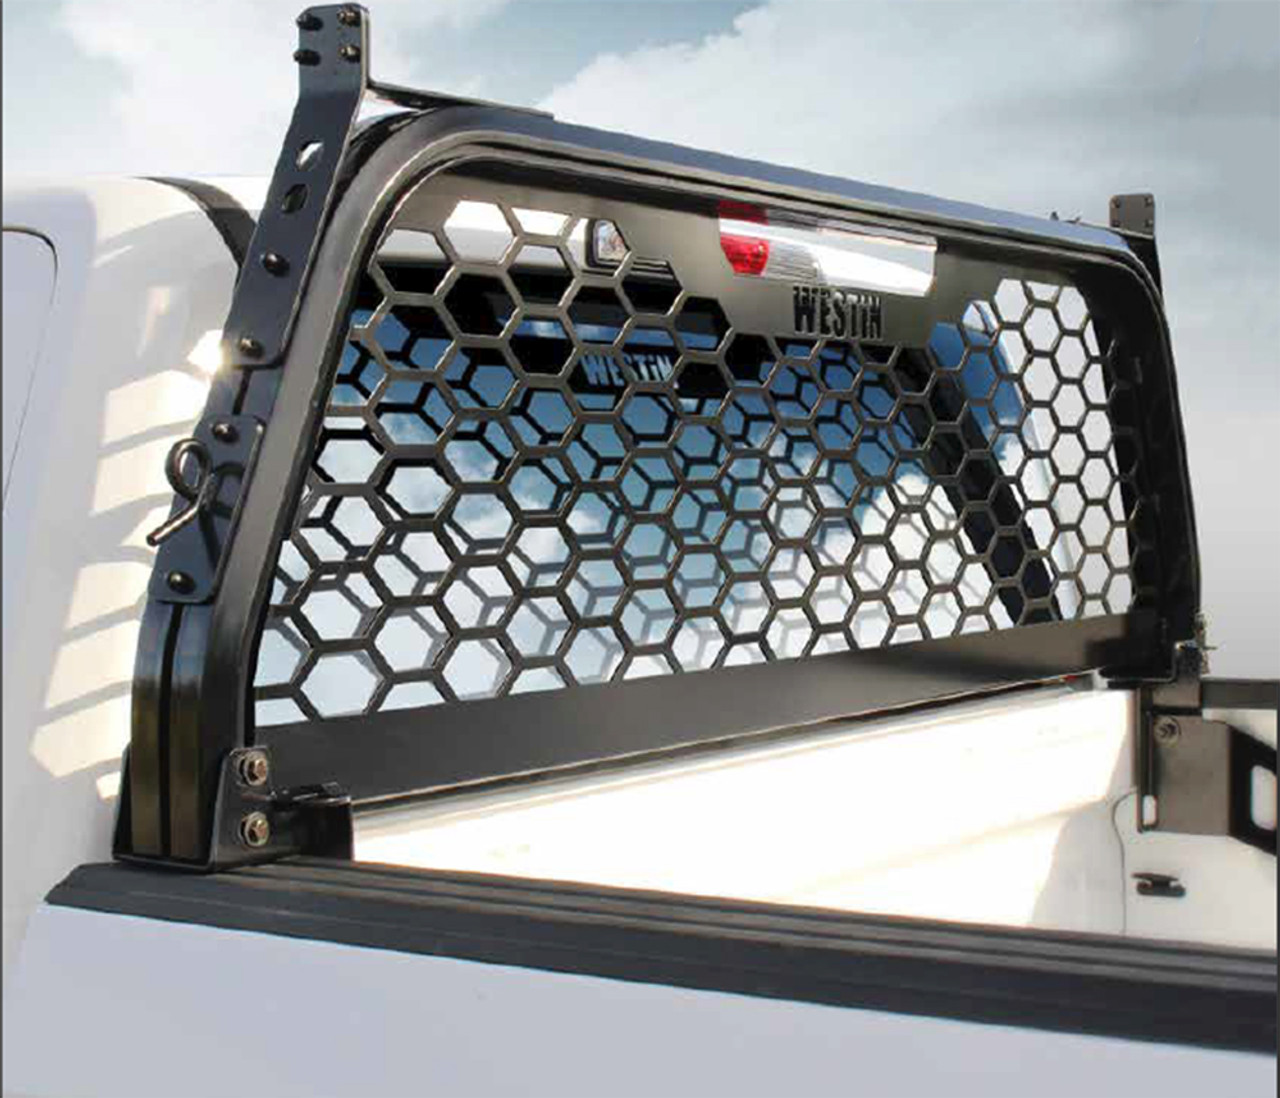 westin hlr pickup truck headache rack 57 81025 dodge ram 2009 2019 high visibility with 78 open aluminum punch plate screen optional adjustable